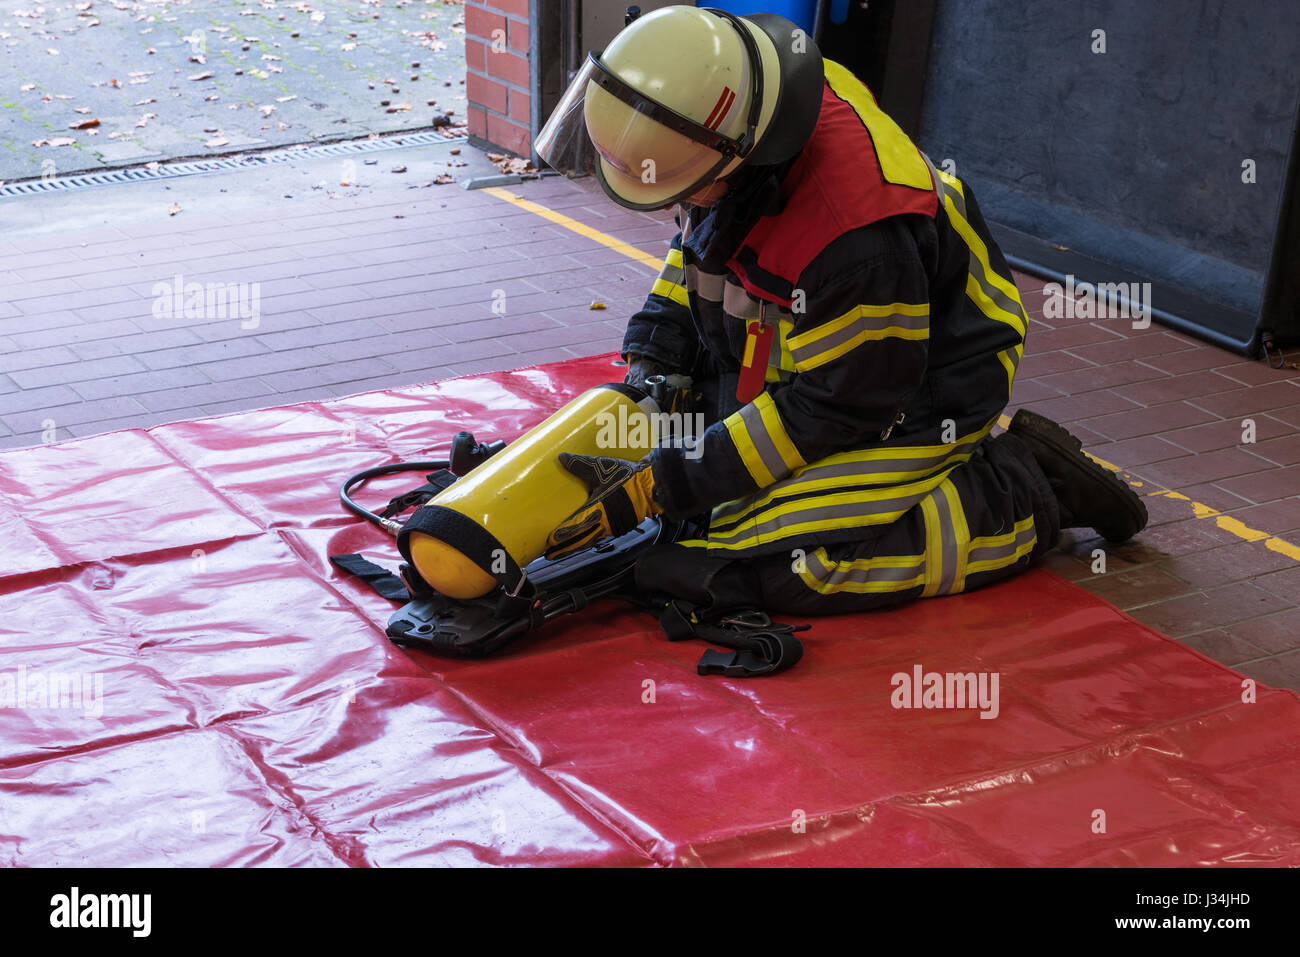 German Firefighter in action with oxygen tank - Stock Image